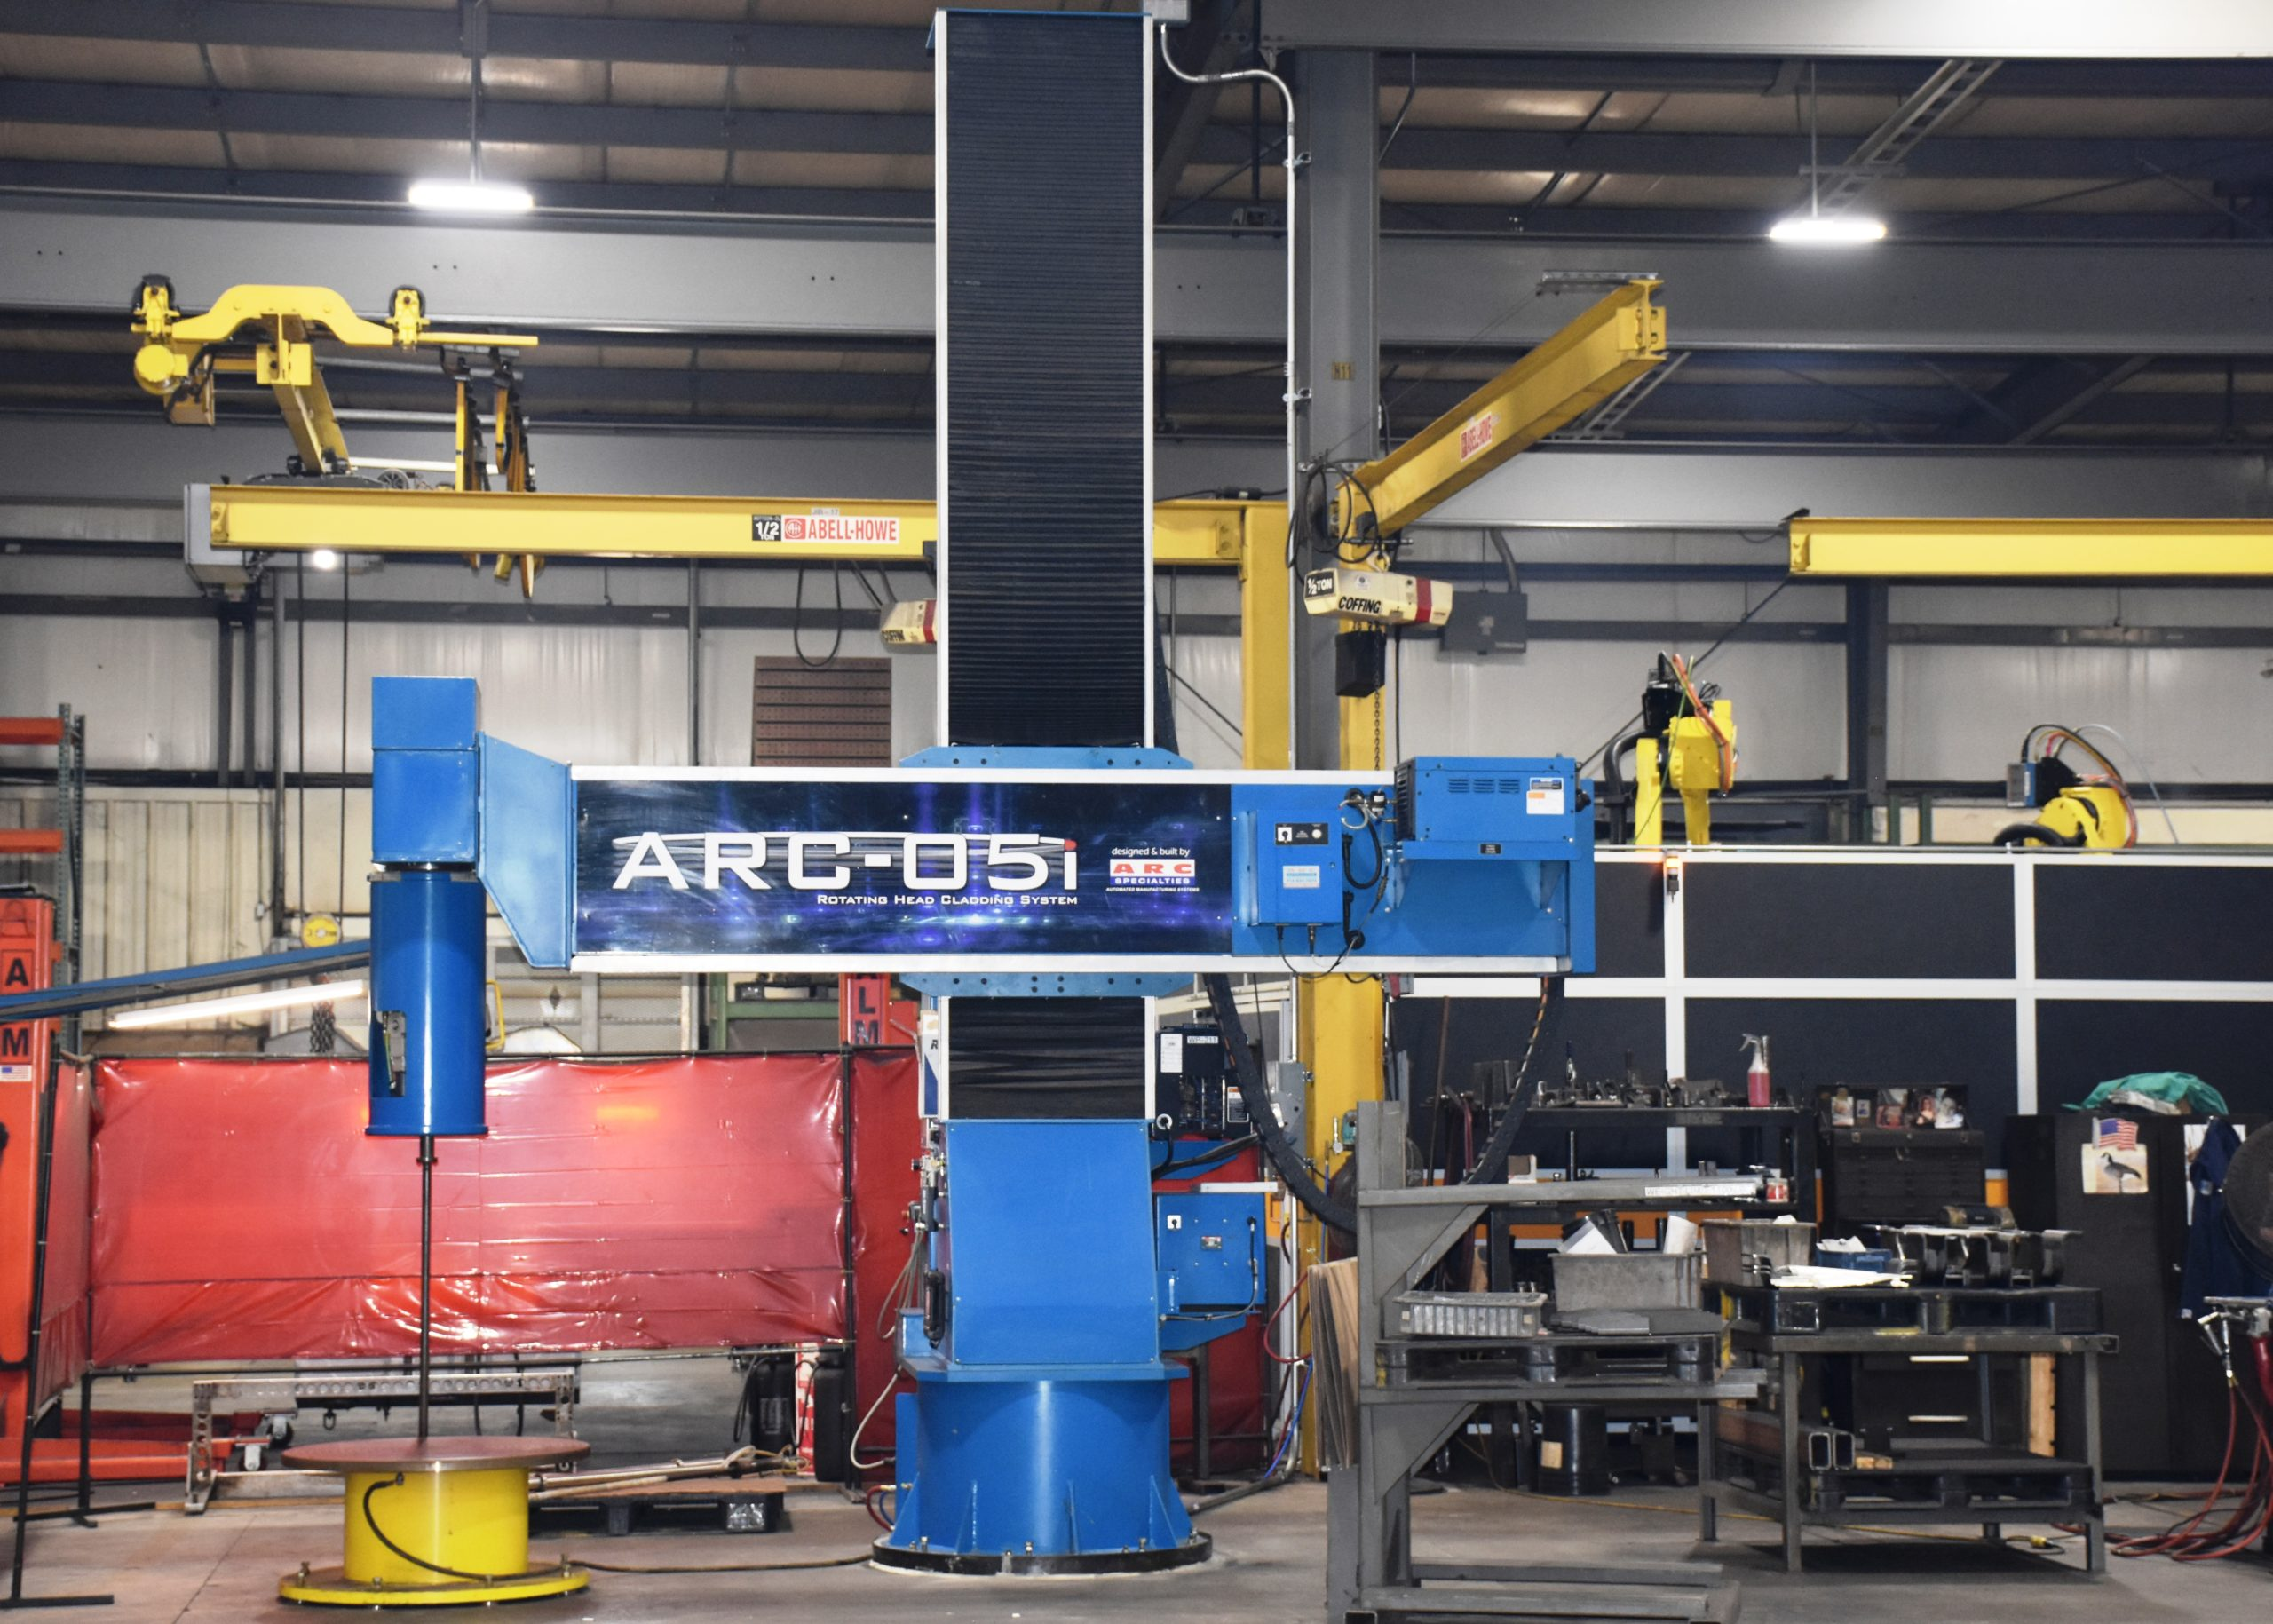 Automated weld cladding for hard surfacing/overlays bore welding and repair